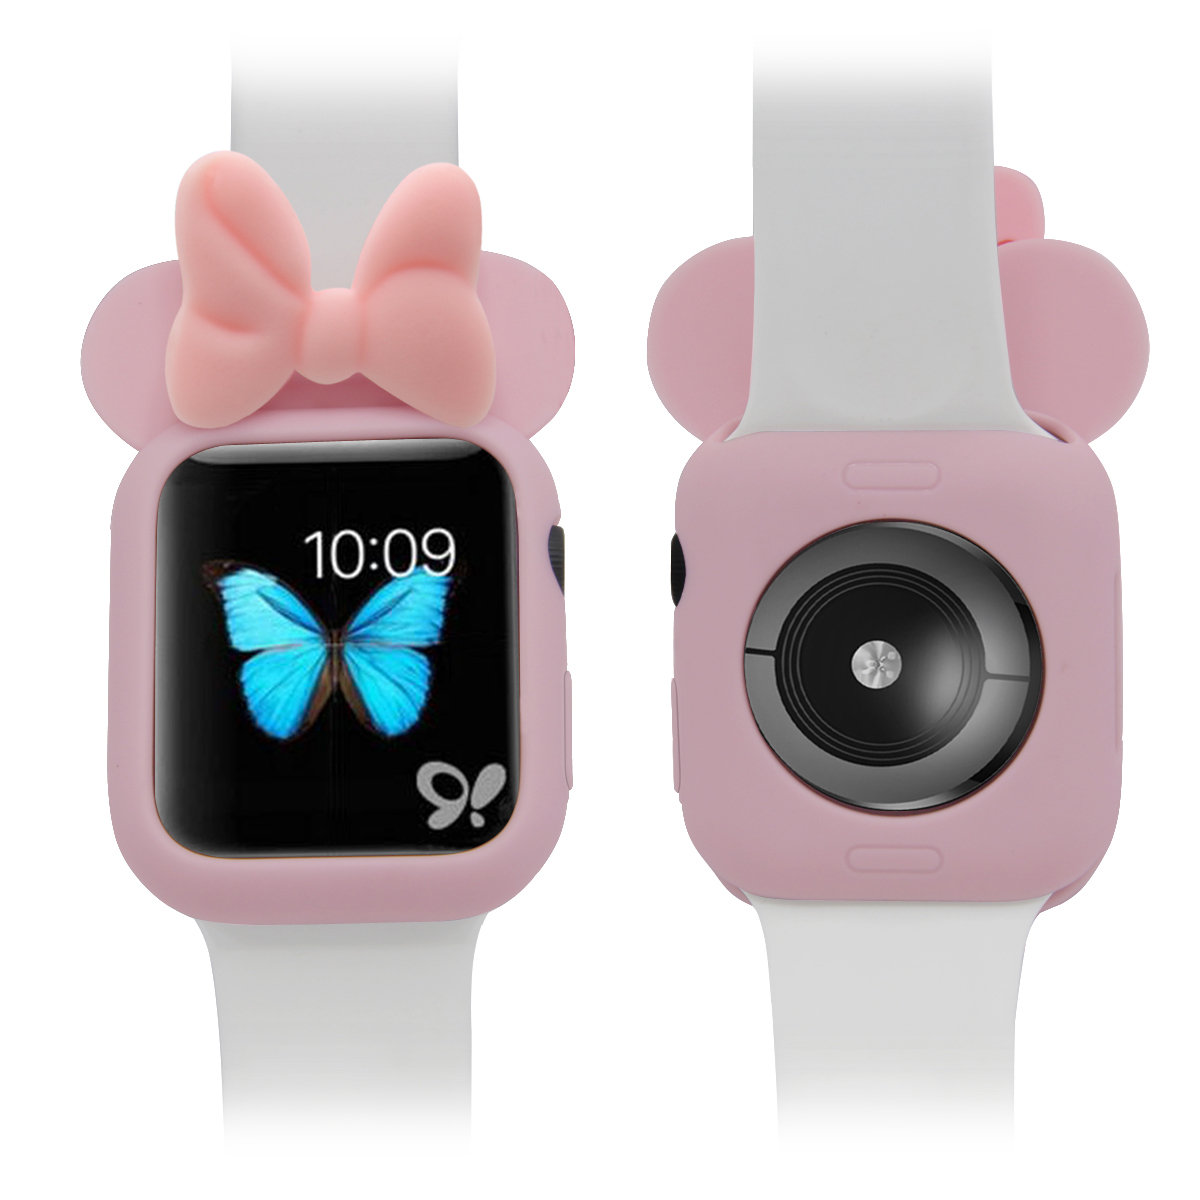 Serilabee MI NI <font><b>CASE</b></font> for apple <font><b>watch</b></font> 4 5/3/2/1 40MM 44MM Lovely protect Tpu <font><b>cases</b></font> for iwatch series 4 5/3/2/1 image